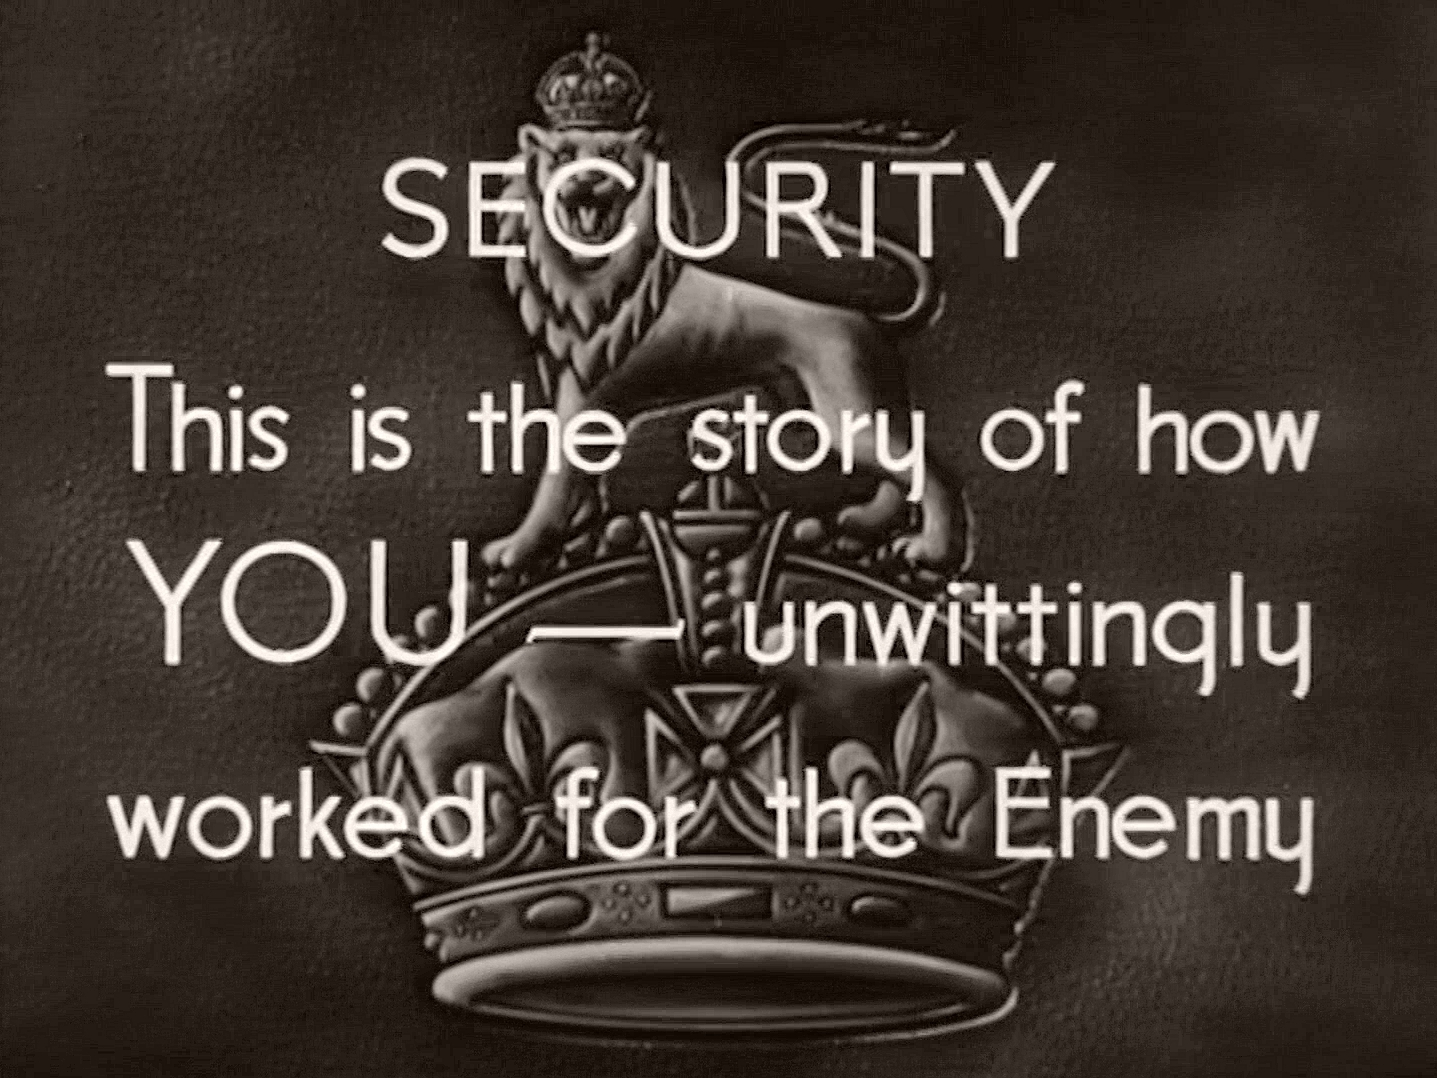 Main title from The Next of Kin (1942) (1). Security. This is the story of how YOU – unwittingly worked for the Enemy